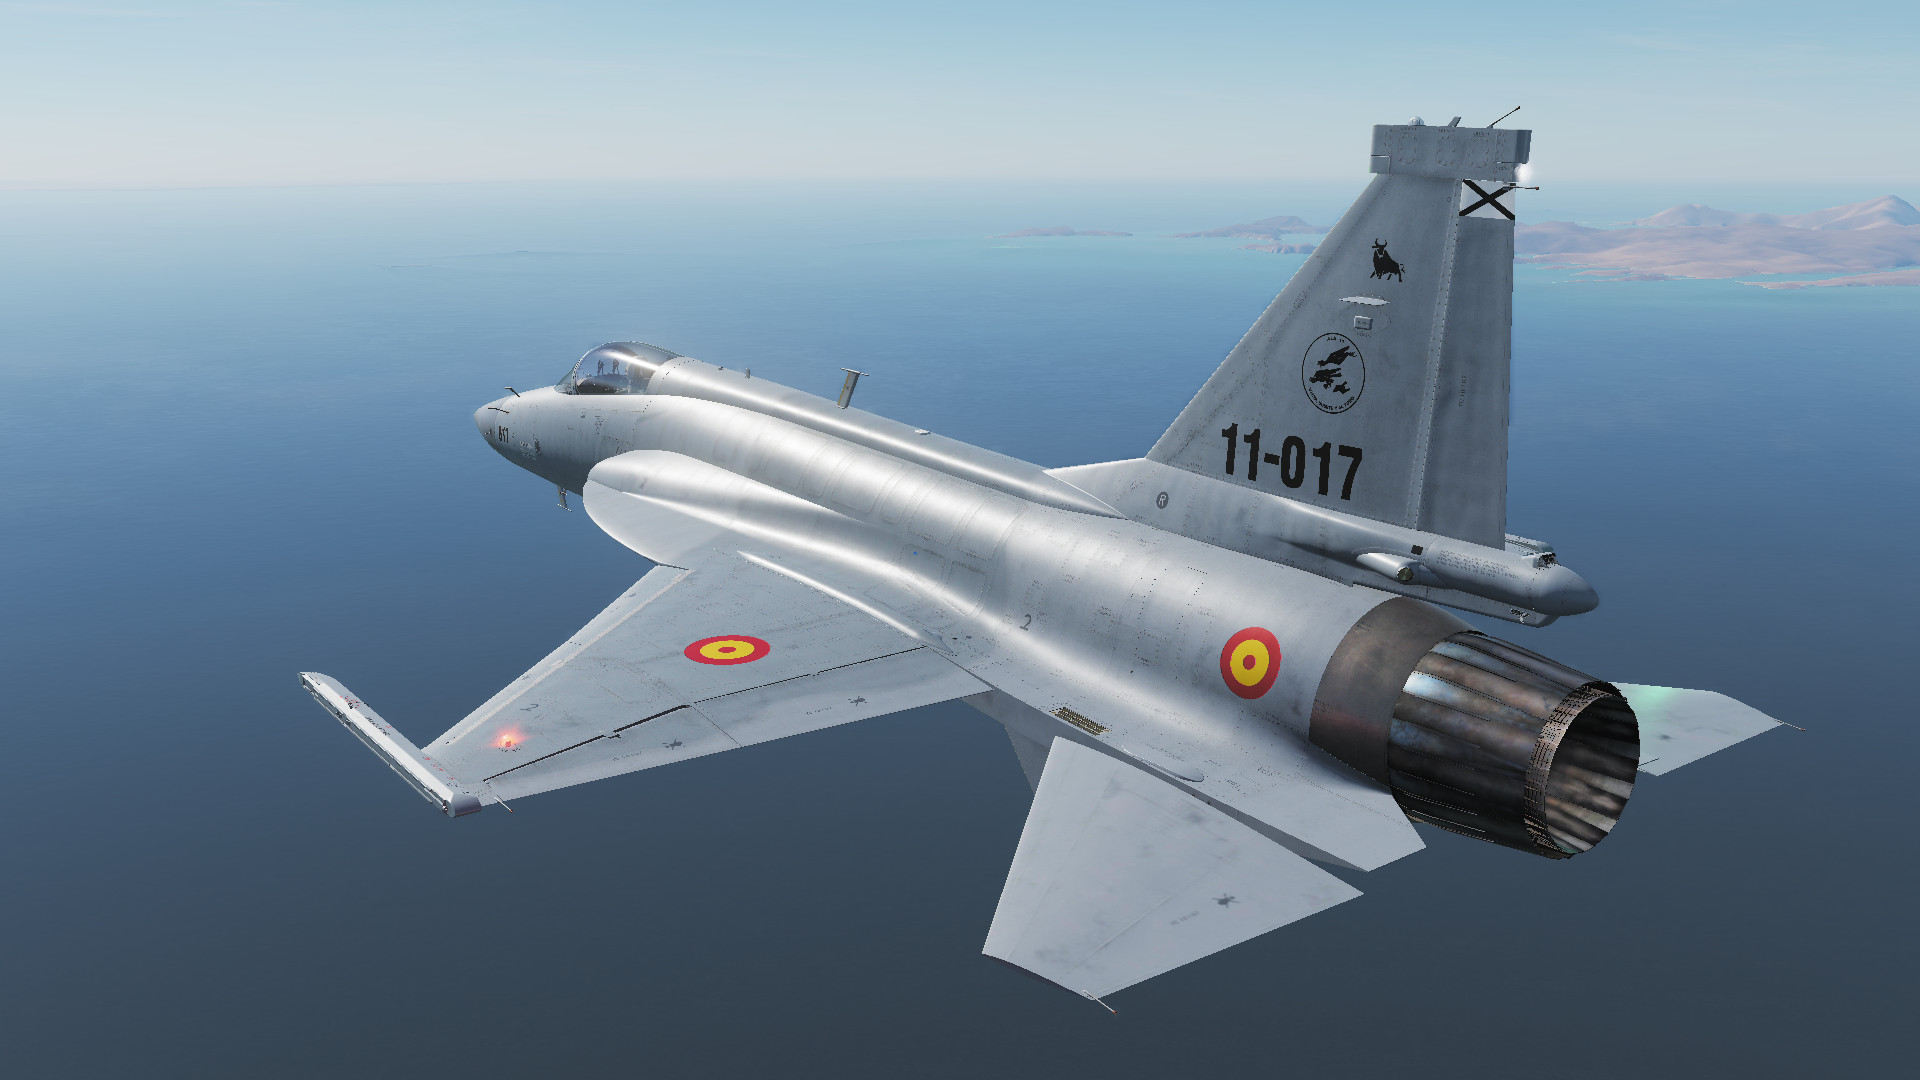 Fictional Spanish AF Ala 11 JF-17 Thunder